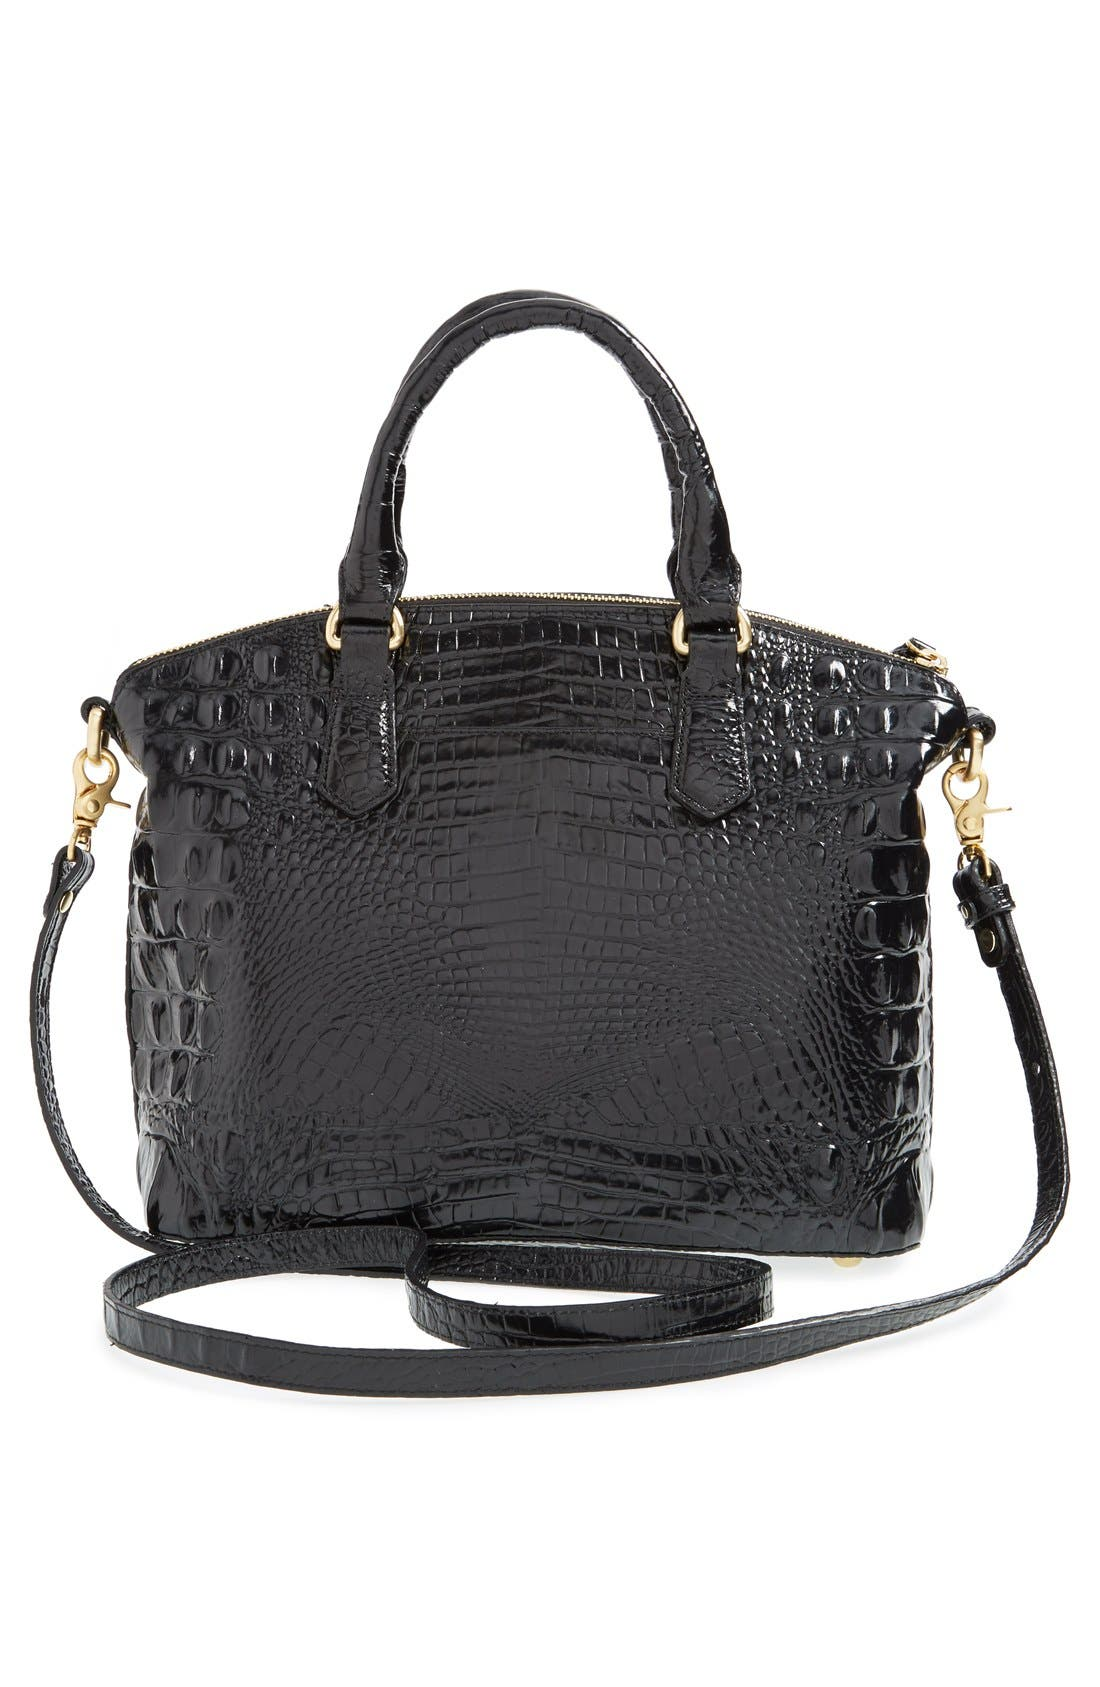 'Medium Duxbury' Croc Embossed Leather Satchel,                             Alternate thumbnail 71, color,